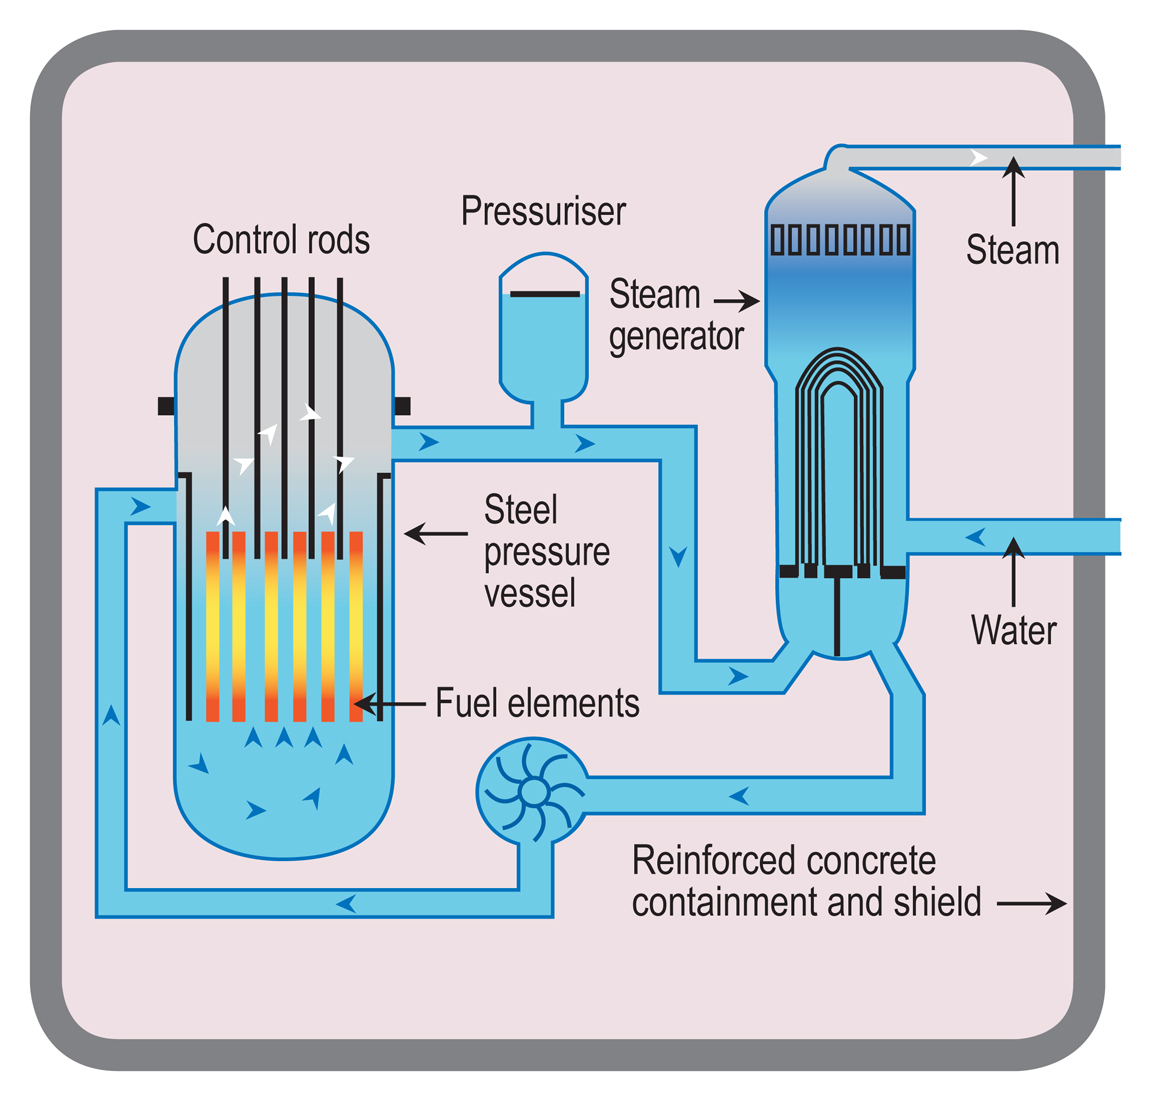 typical us nuclear power plant diagram how does a nuclear reactor make electricity? - world ...